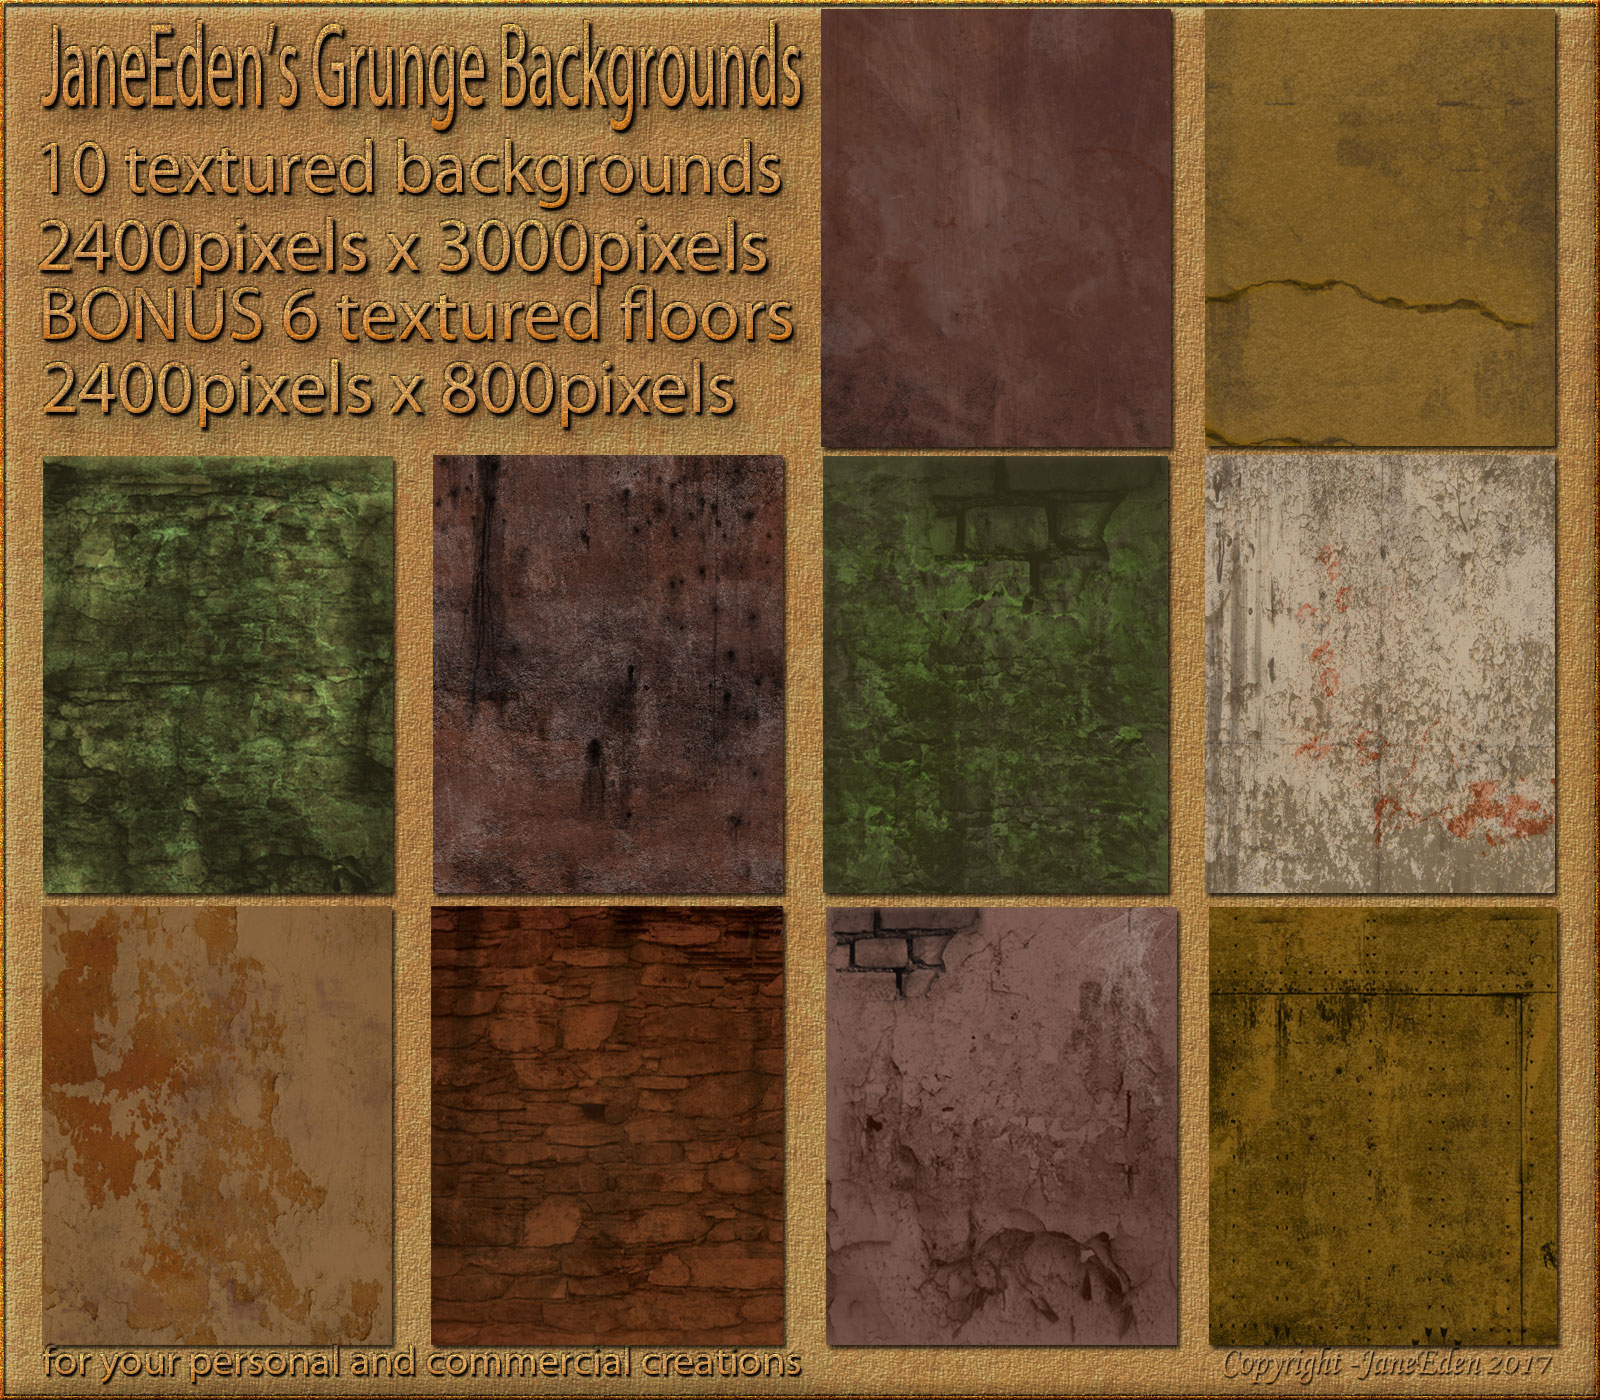 JaneEden's Grunge Backgrounds by JaneEden